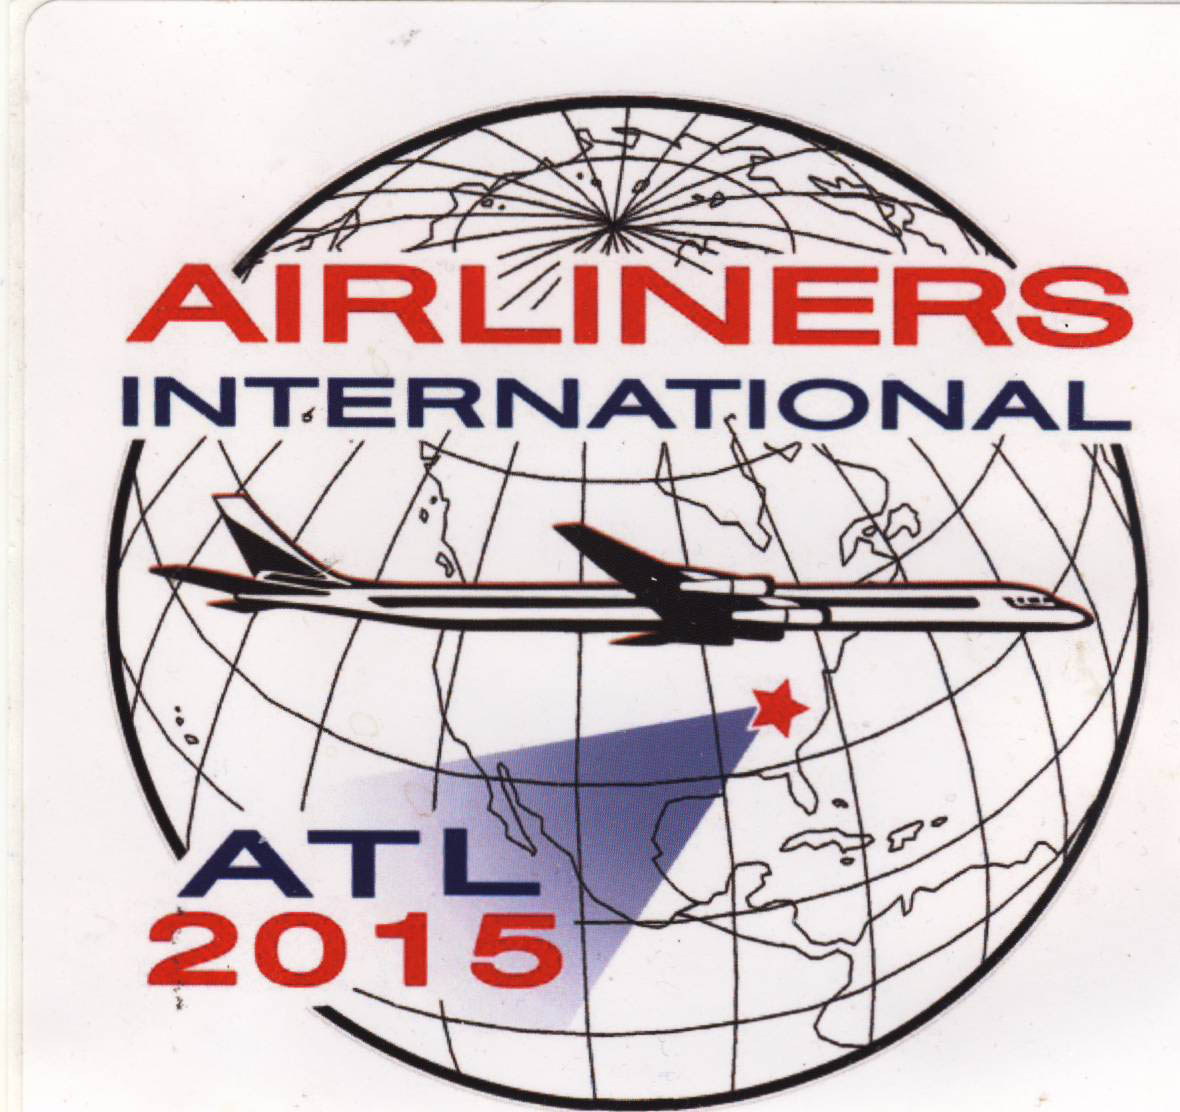 Airliners International